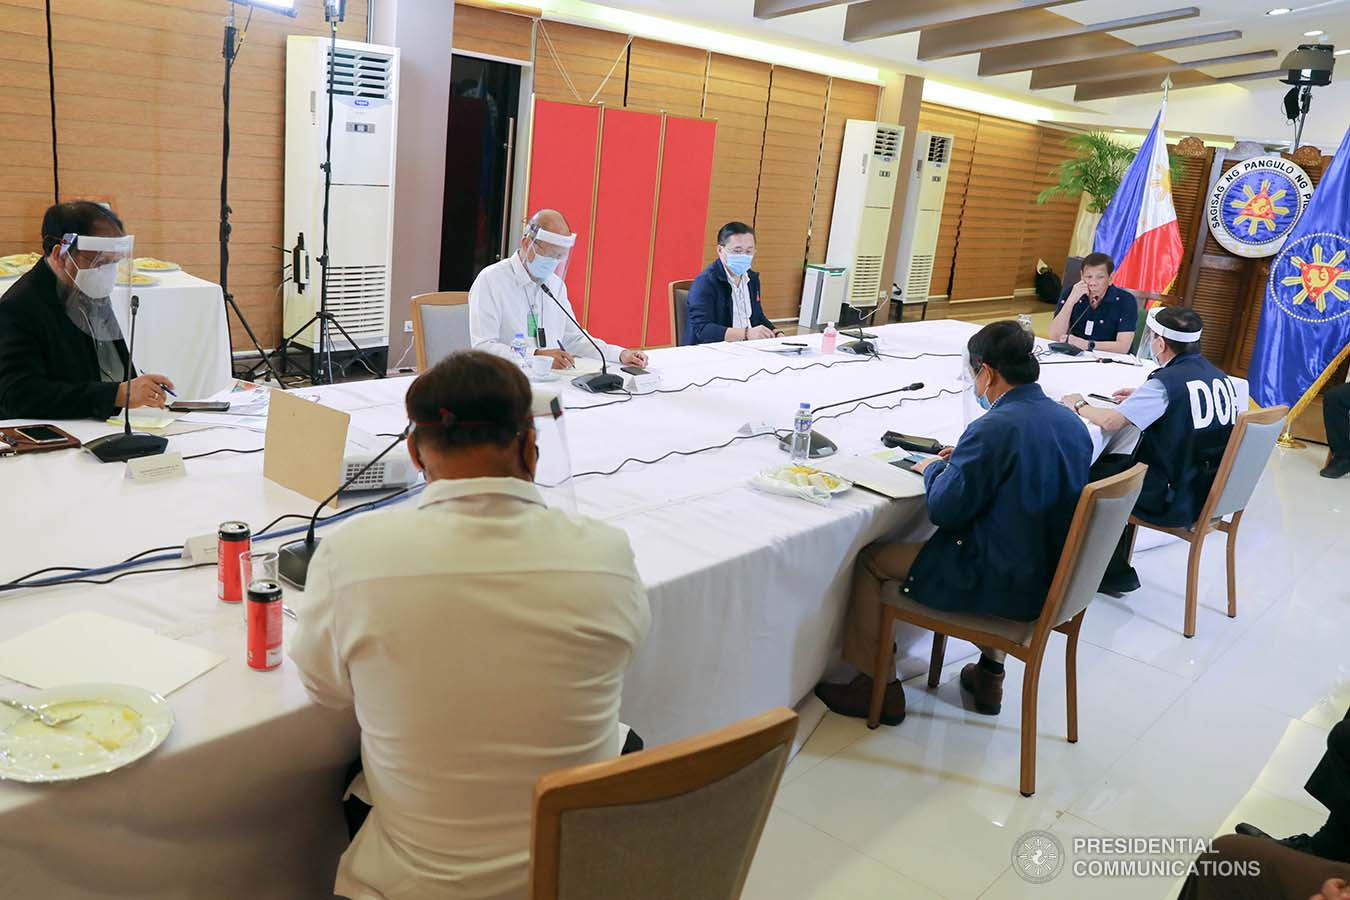 President Rodrigo Roa Duterte holds a meeting with members of the Inter-Agency Task Force on the Emerging Infectious Diseases (IATF-EID) at the Matina Enclaves in Davao City on June 4, 2020. ROBINSON NIÑAL JR./PRESIDENTIAL PHOTO